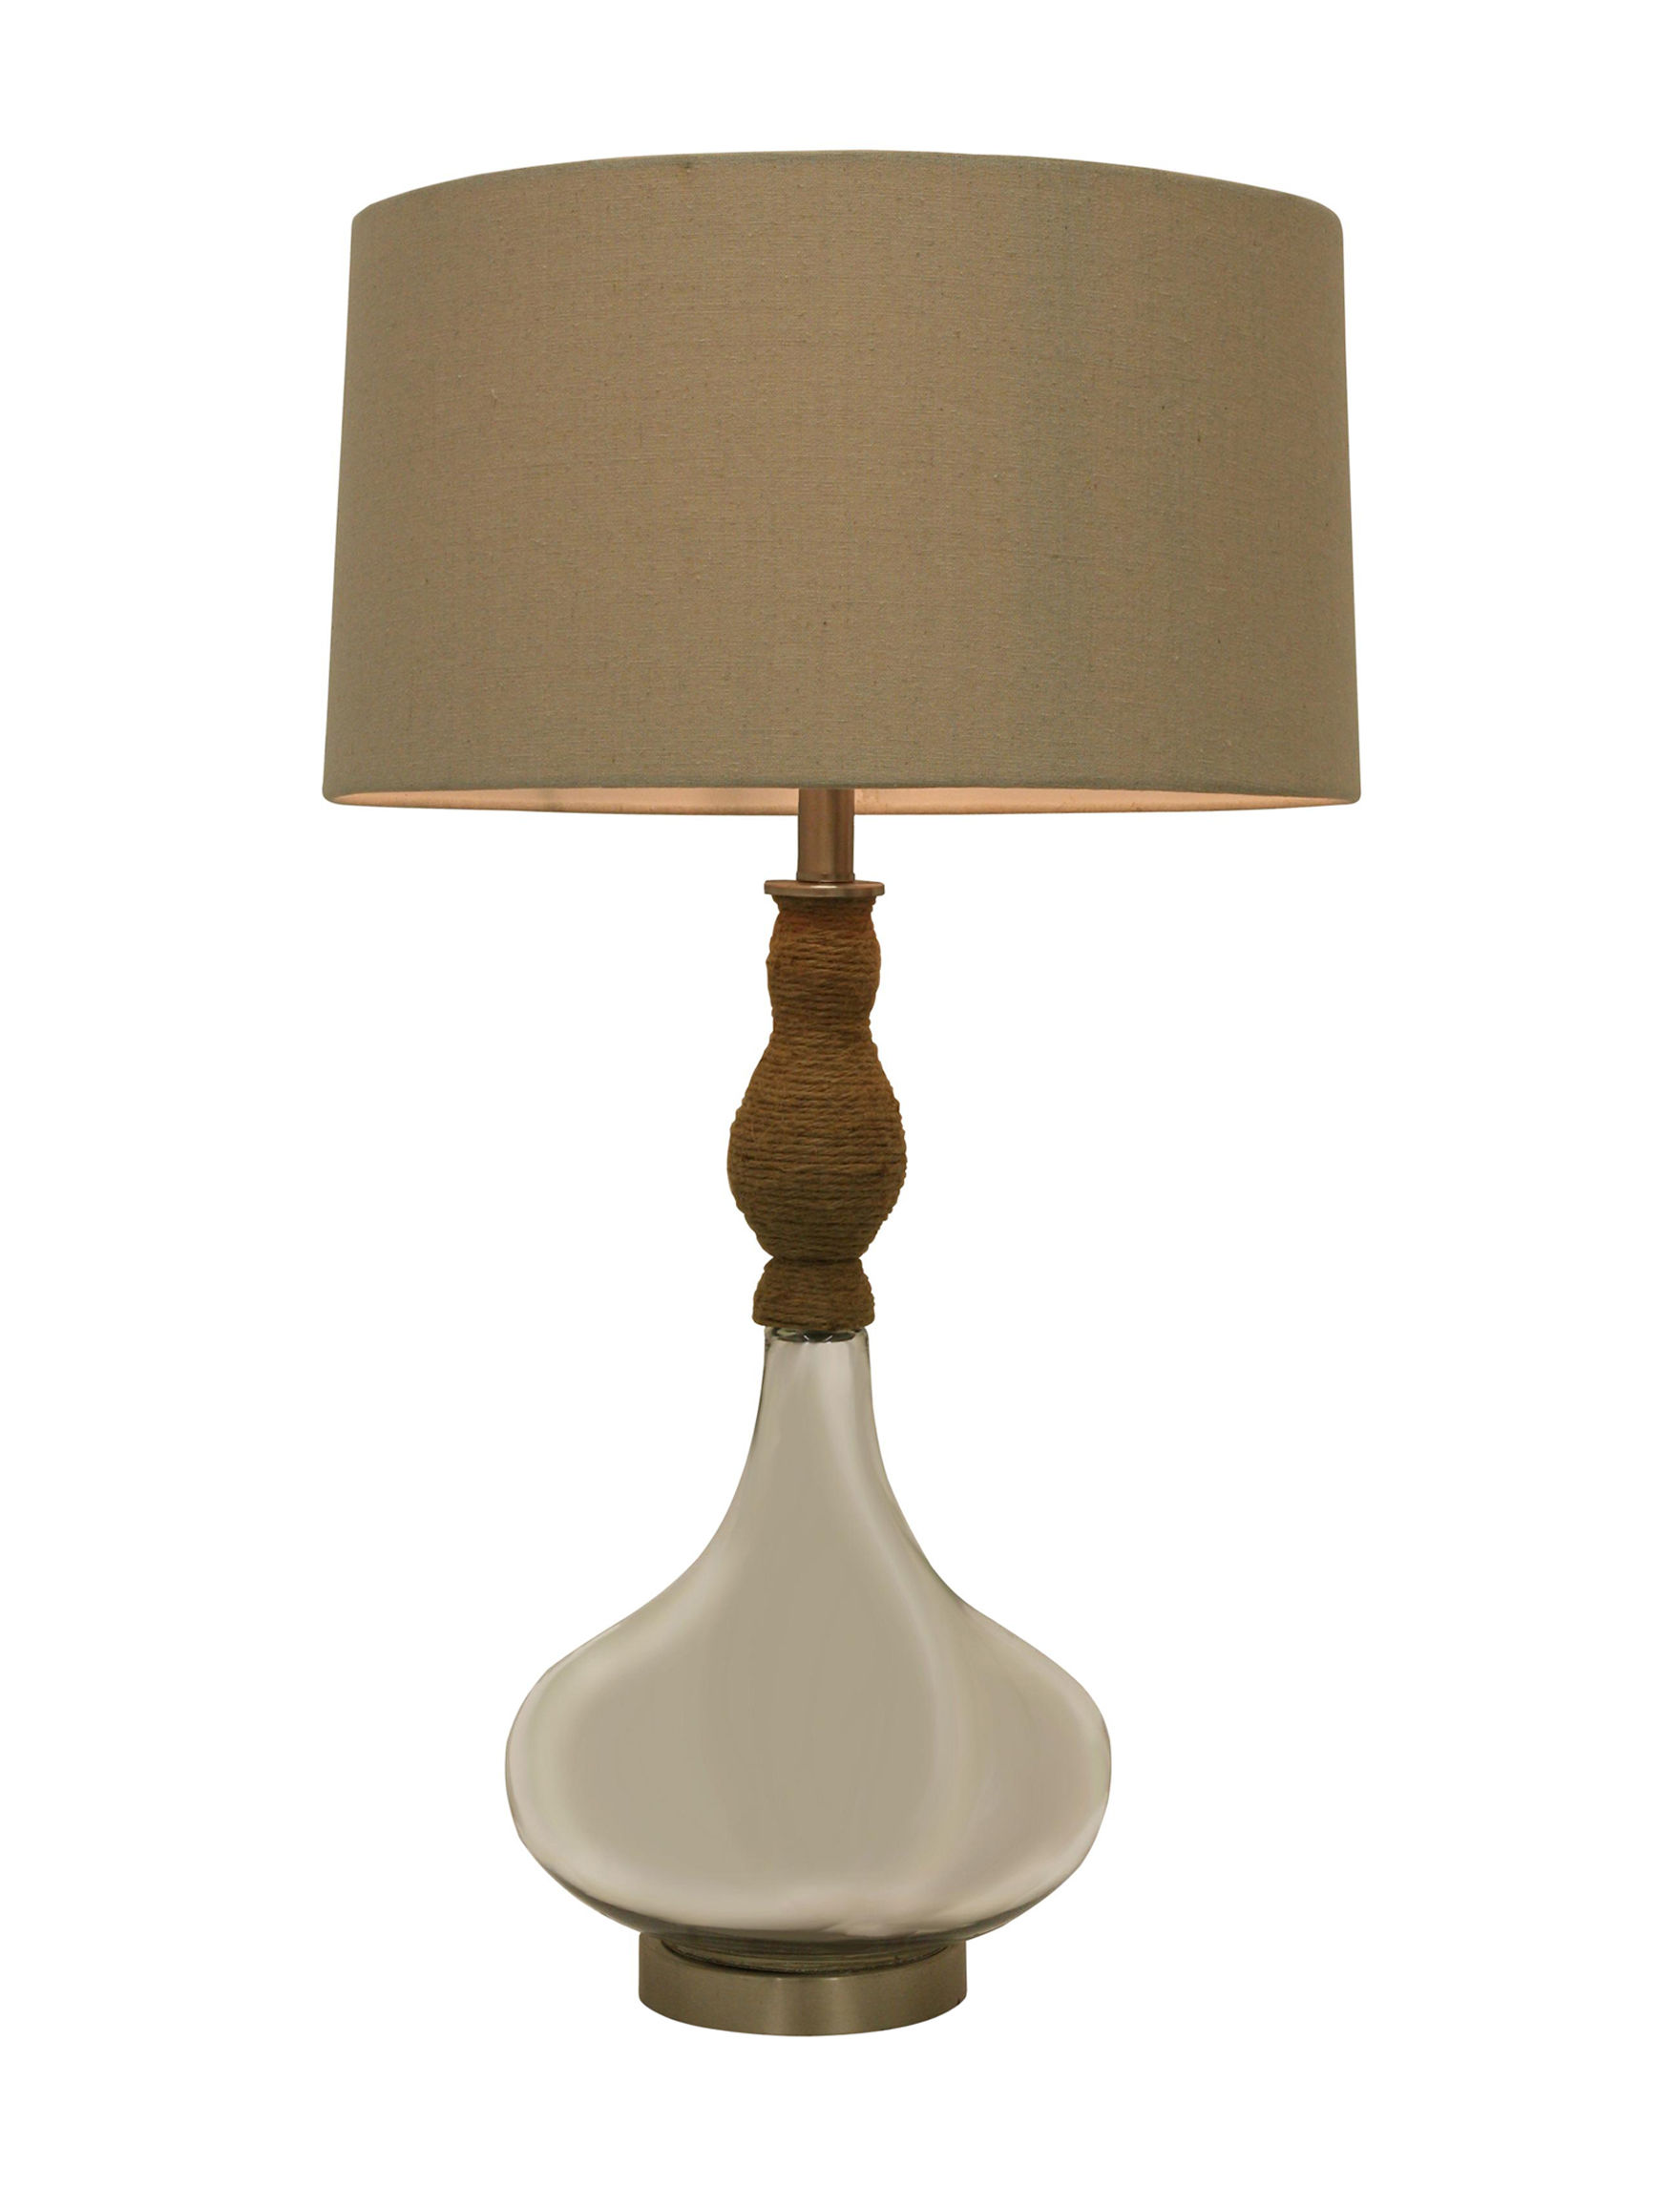 Decor Therapy Grey Table Lamps Lighting & Lamps